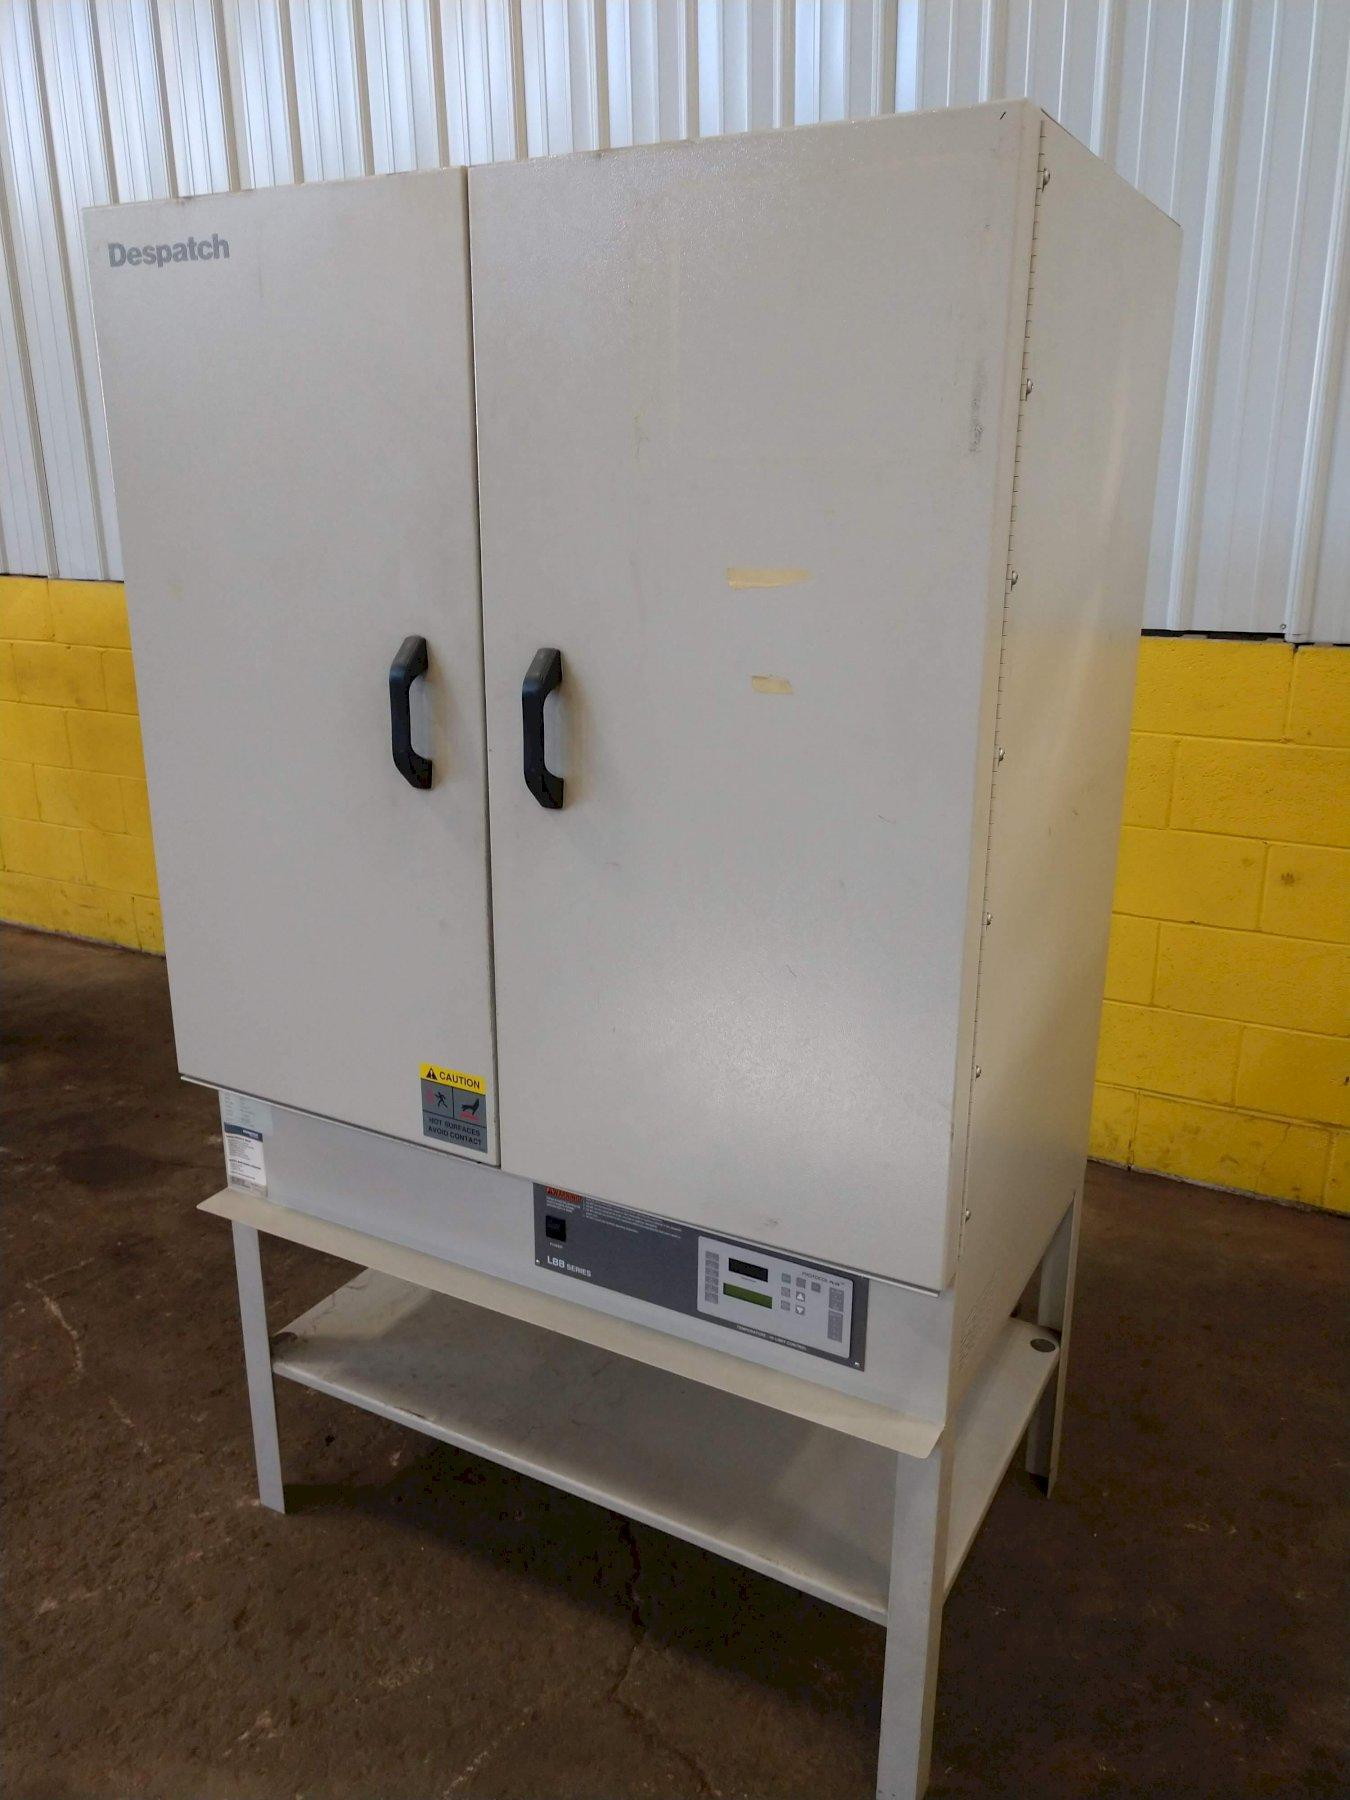 """400 DEGREE X 37"""" W X 24"""" D X 35"""" H DESPACH SERIES LBB2-18-1 ELECTRICAL OVEN: STOCK 13686"""